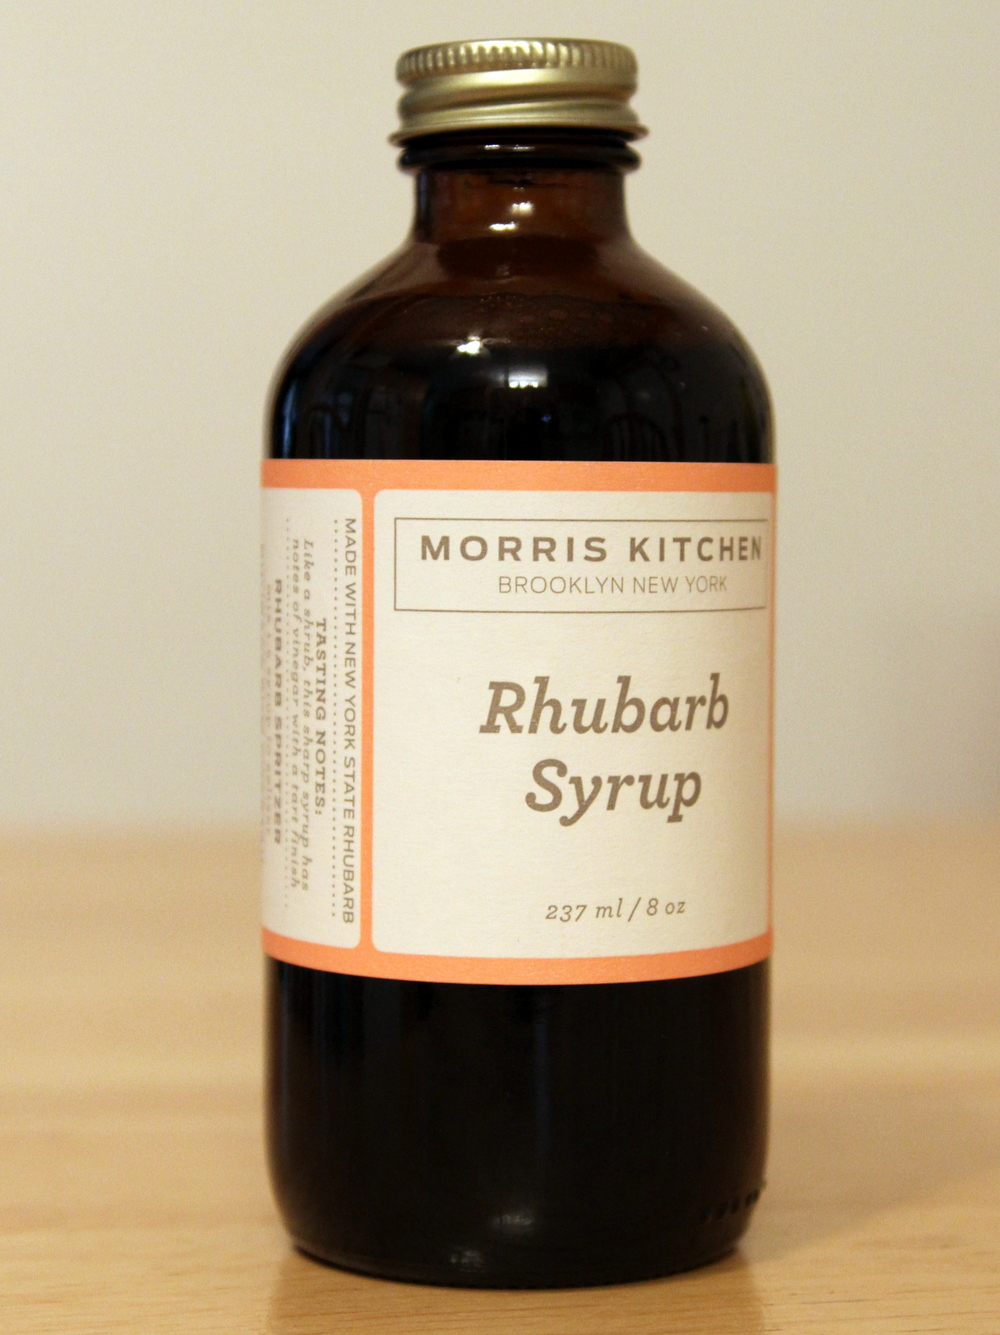 I used Morris Kitchen Rhubarb Syrup. Made in Brooklyn, but found in our wine store in NJ.